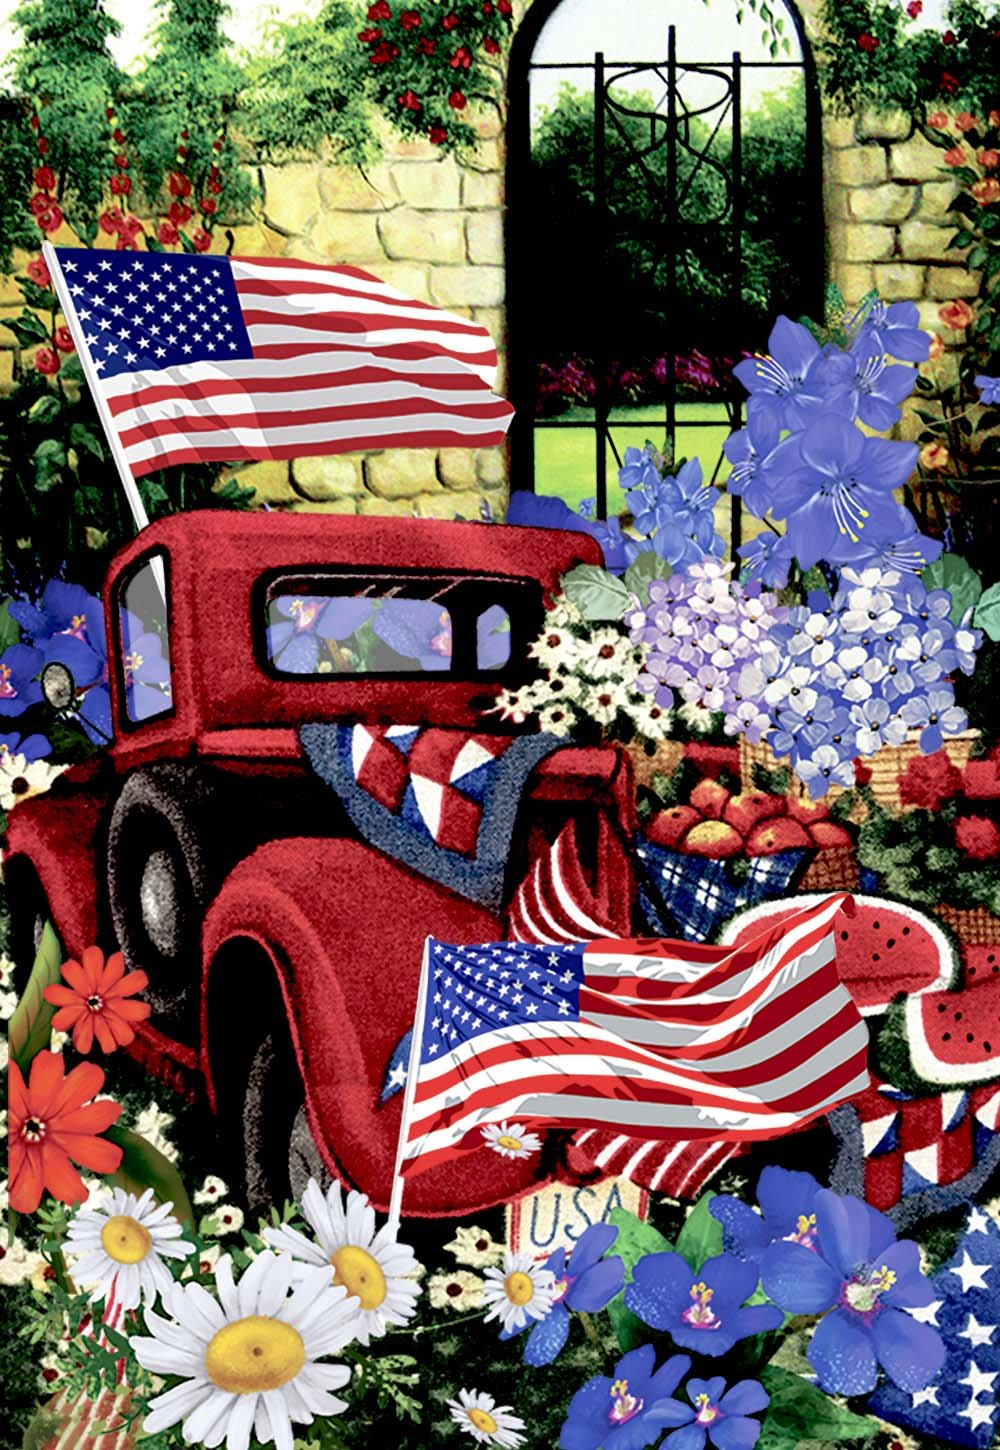 Morigins Outdoor 4th of July Flowers Garden Flag Double Sided, Old Red Truck House Yard Flag Daisy, American Holiday USA Seasonal Outdoor Flag 12.5 x 18